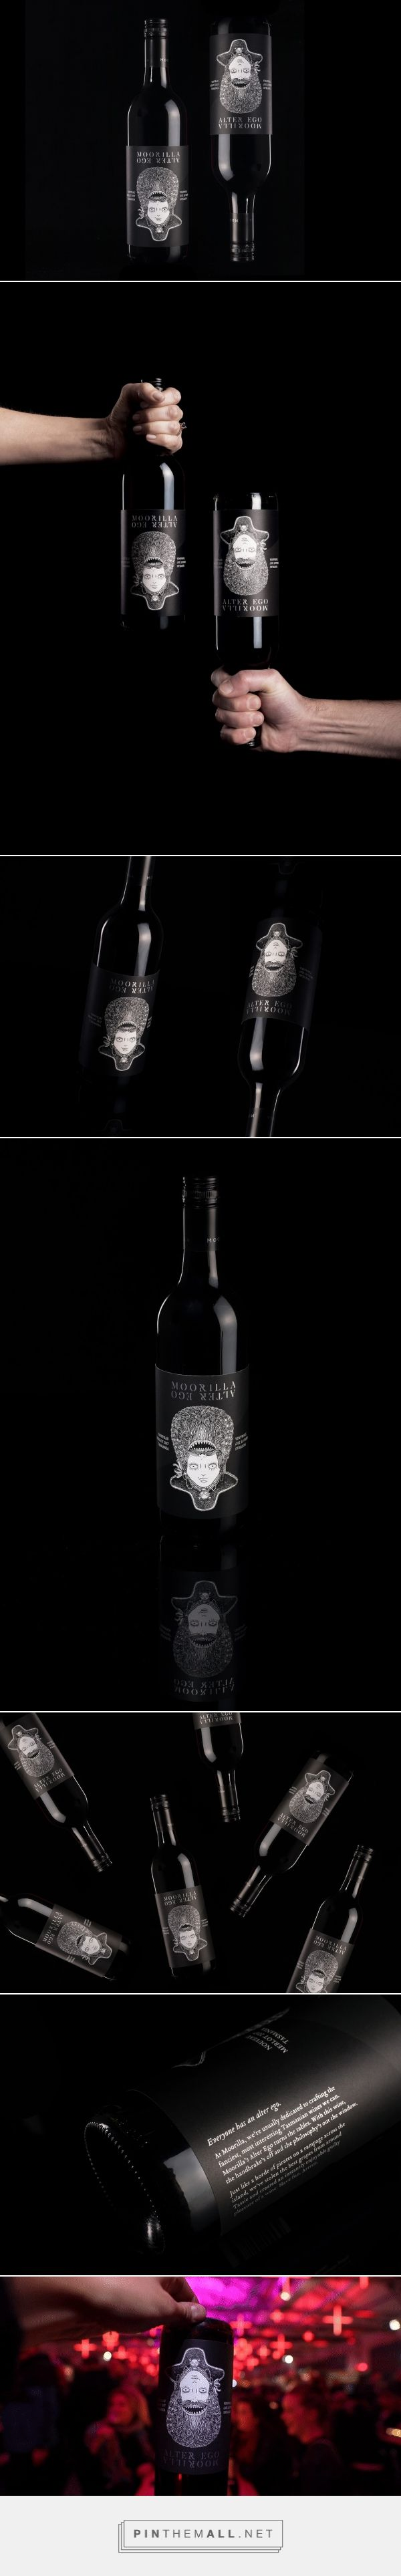 Every #wine #label should have a hidden pirate - #design by MONA - Museum of Old and New Art - http://www.packagingoftheworld.com/2017/06/moorilla-alter-ego.html